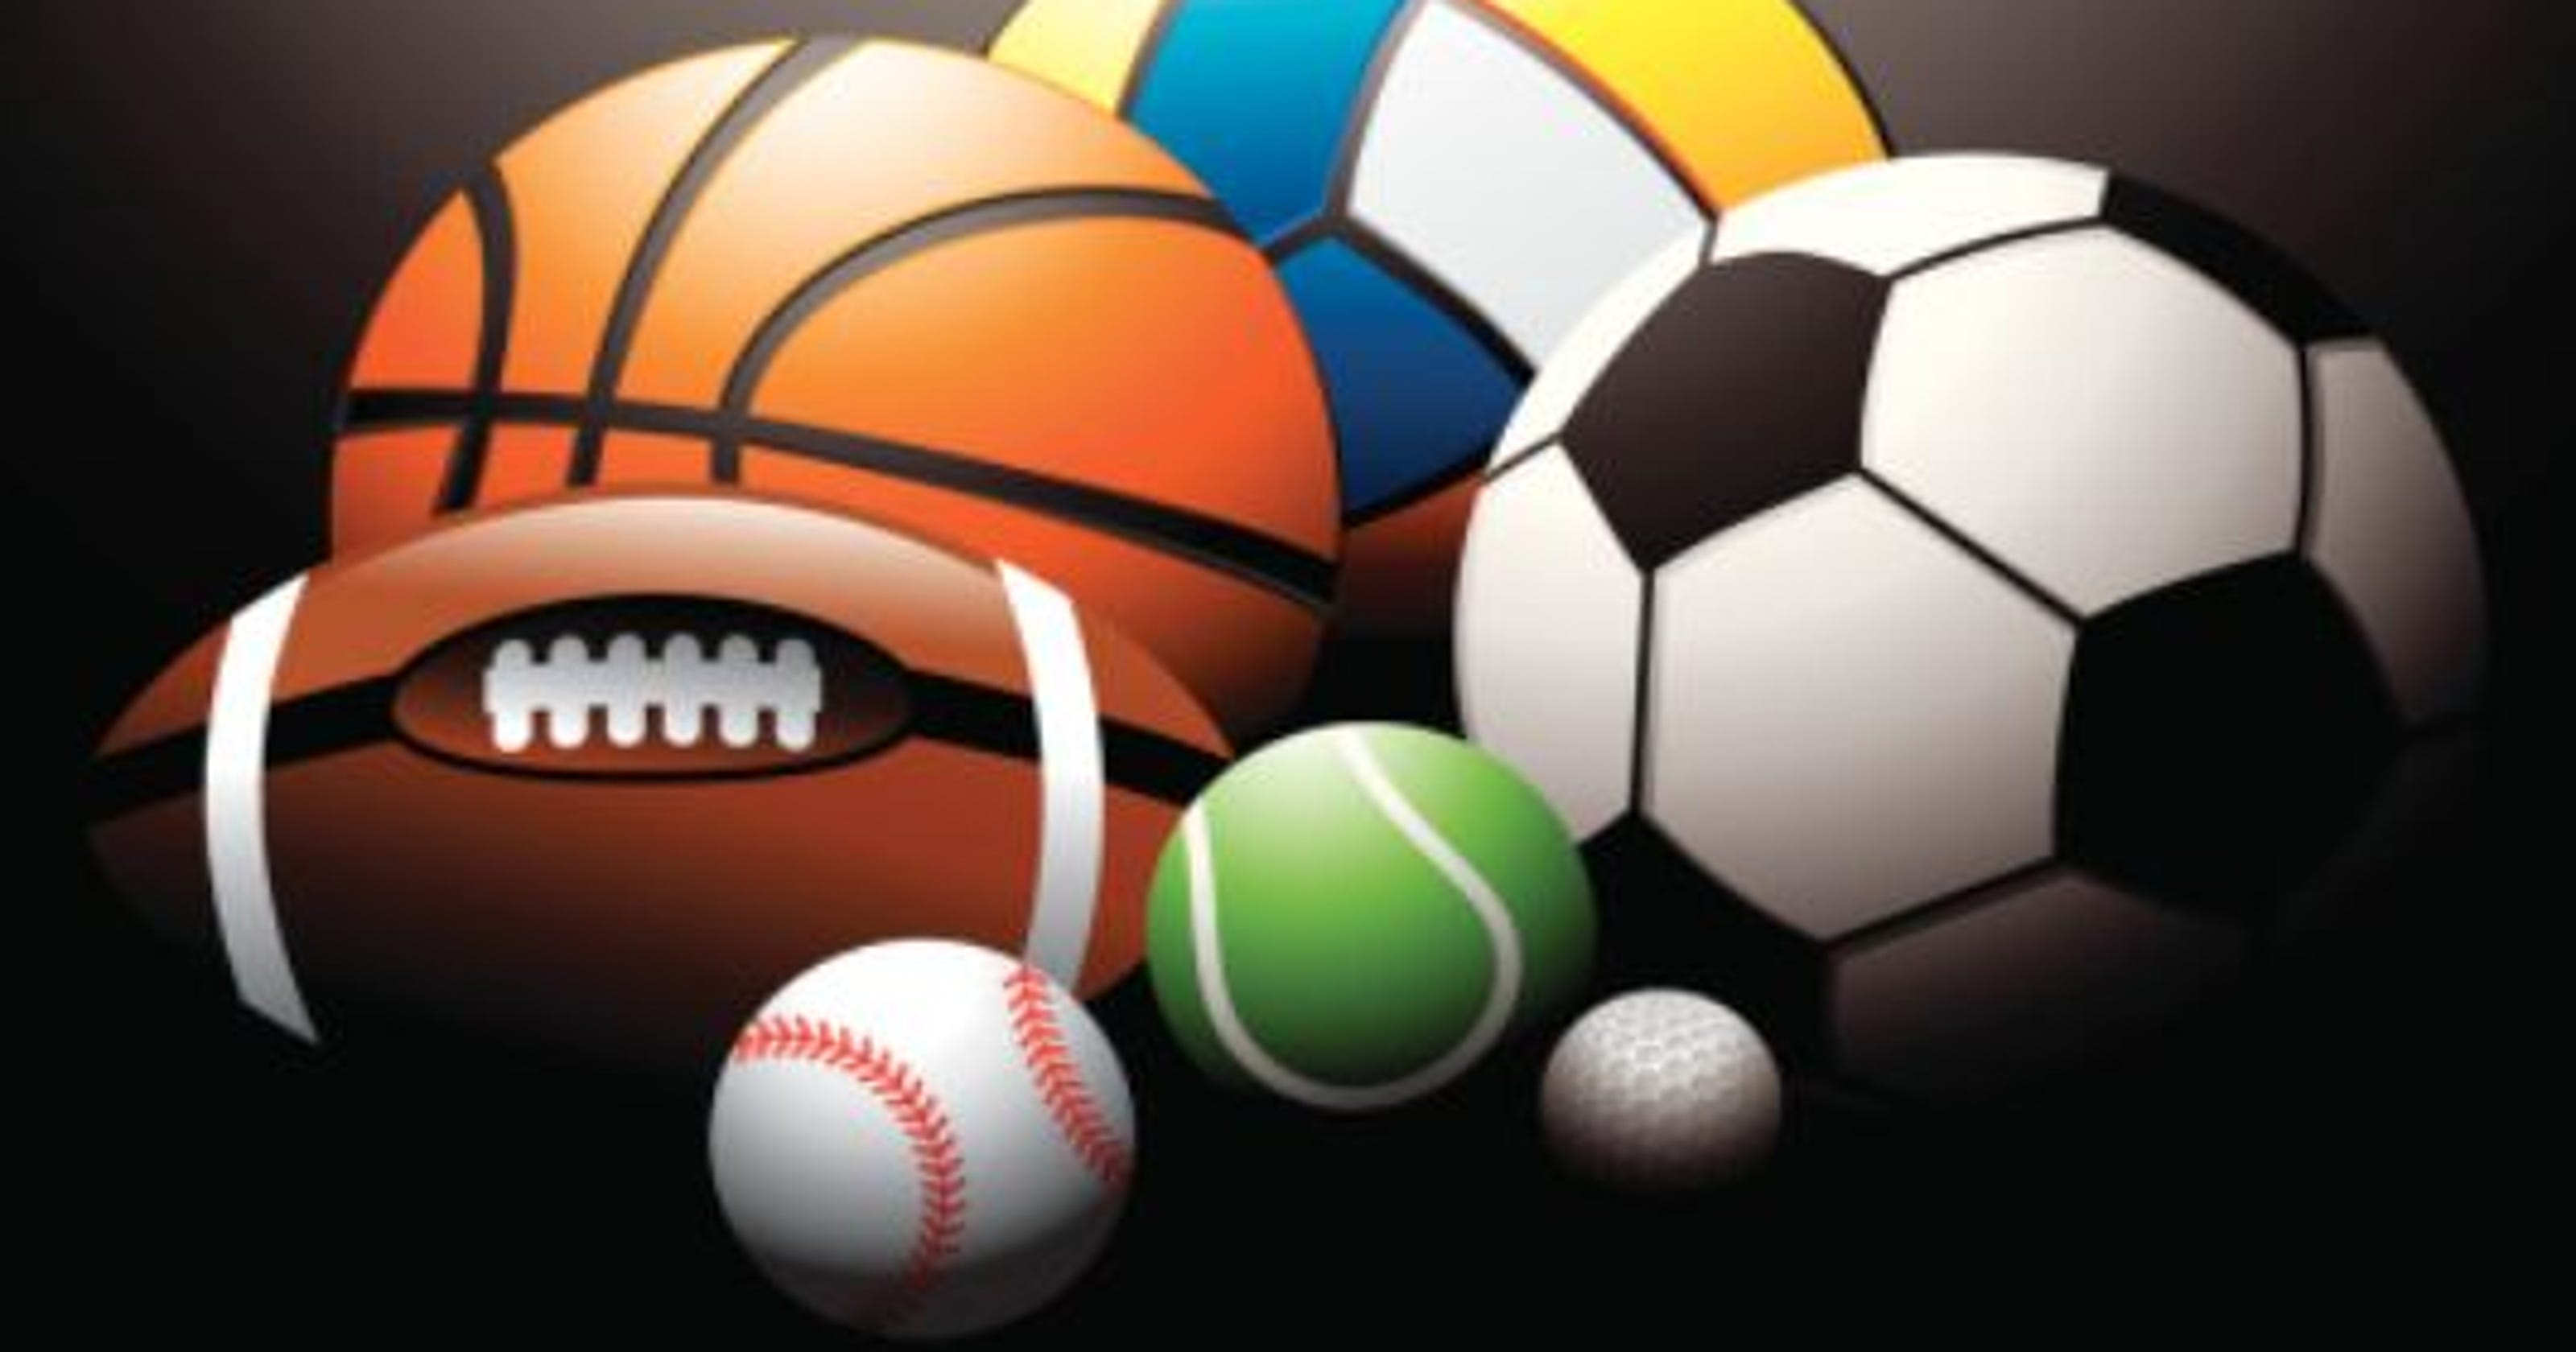 Sports Computer Wallpaper: Track, Volleyball, Golf, And Tennis Results For Wednesday